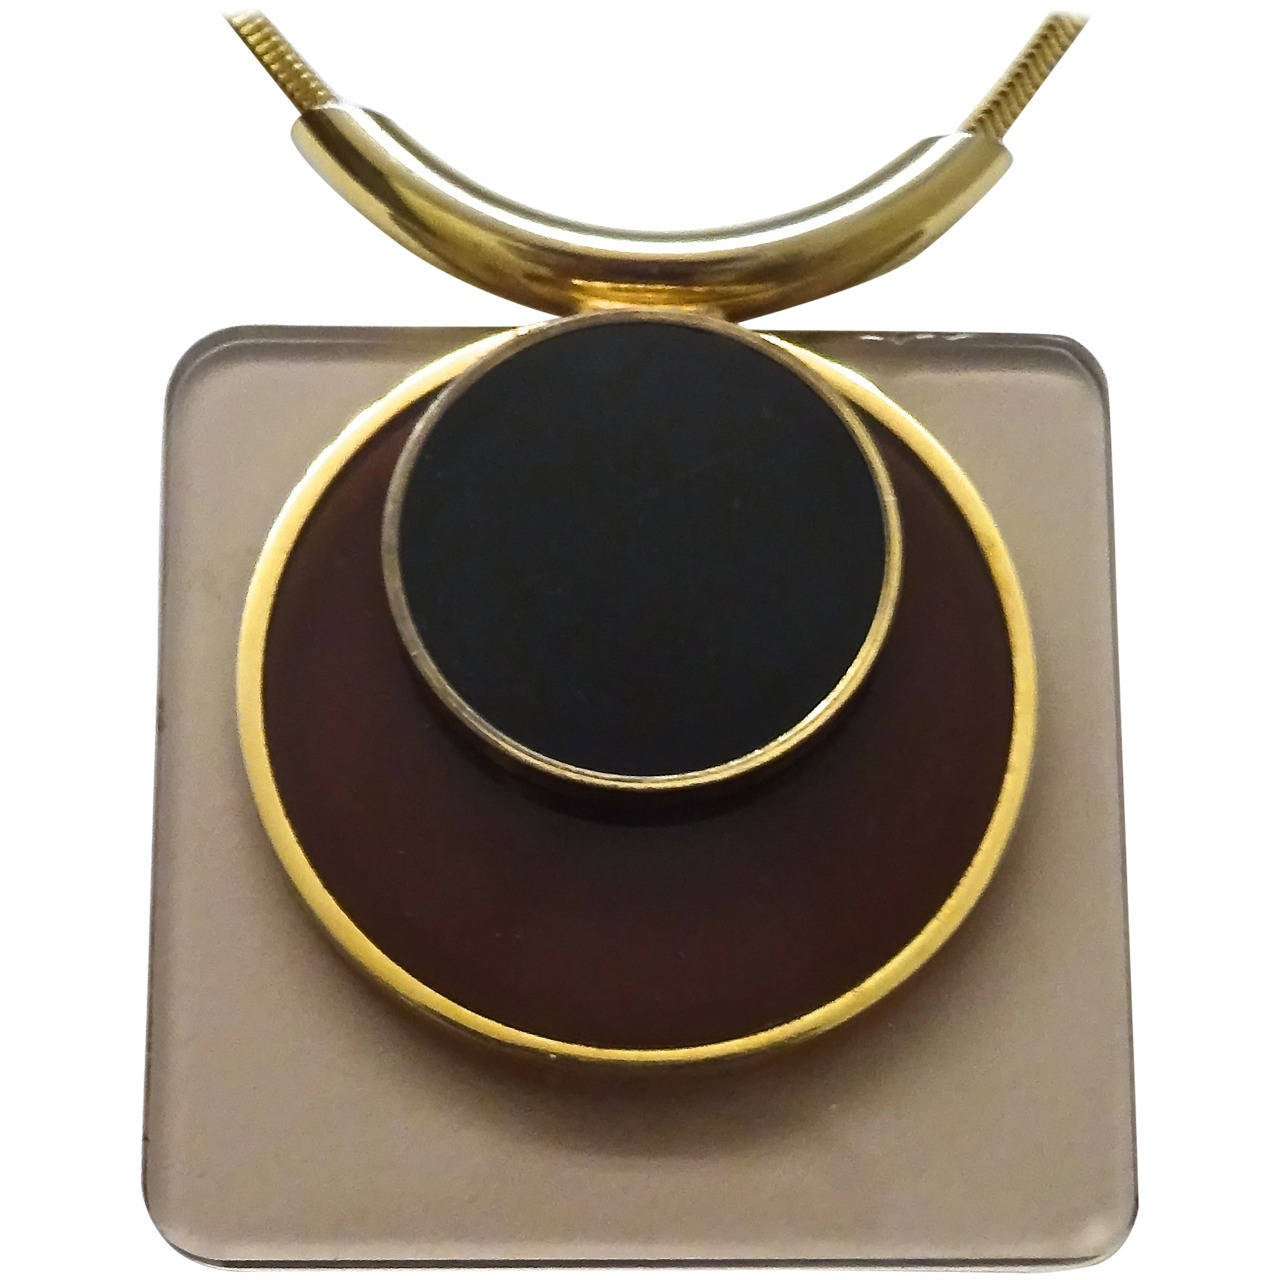 Modernist 1970s, French Lucite Pendant